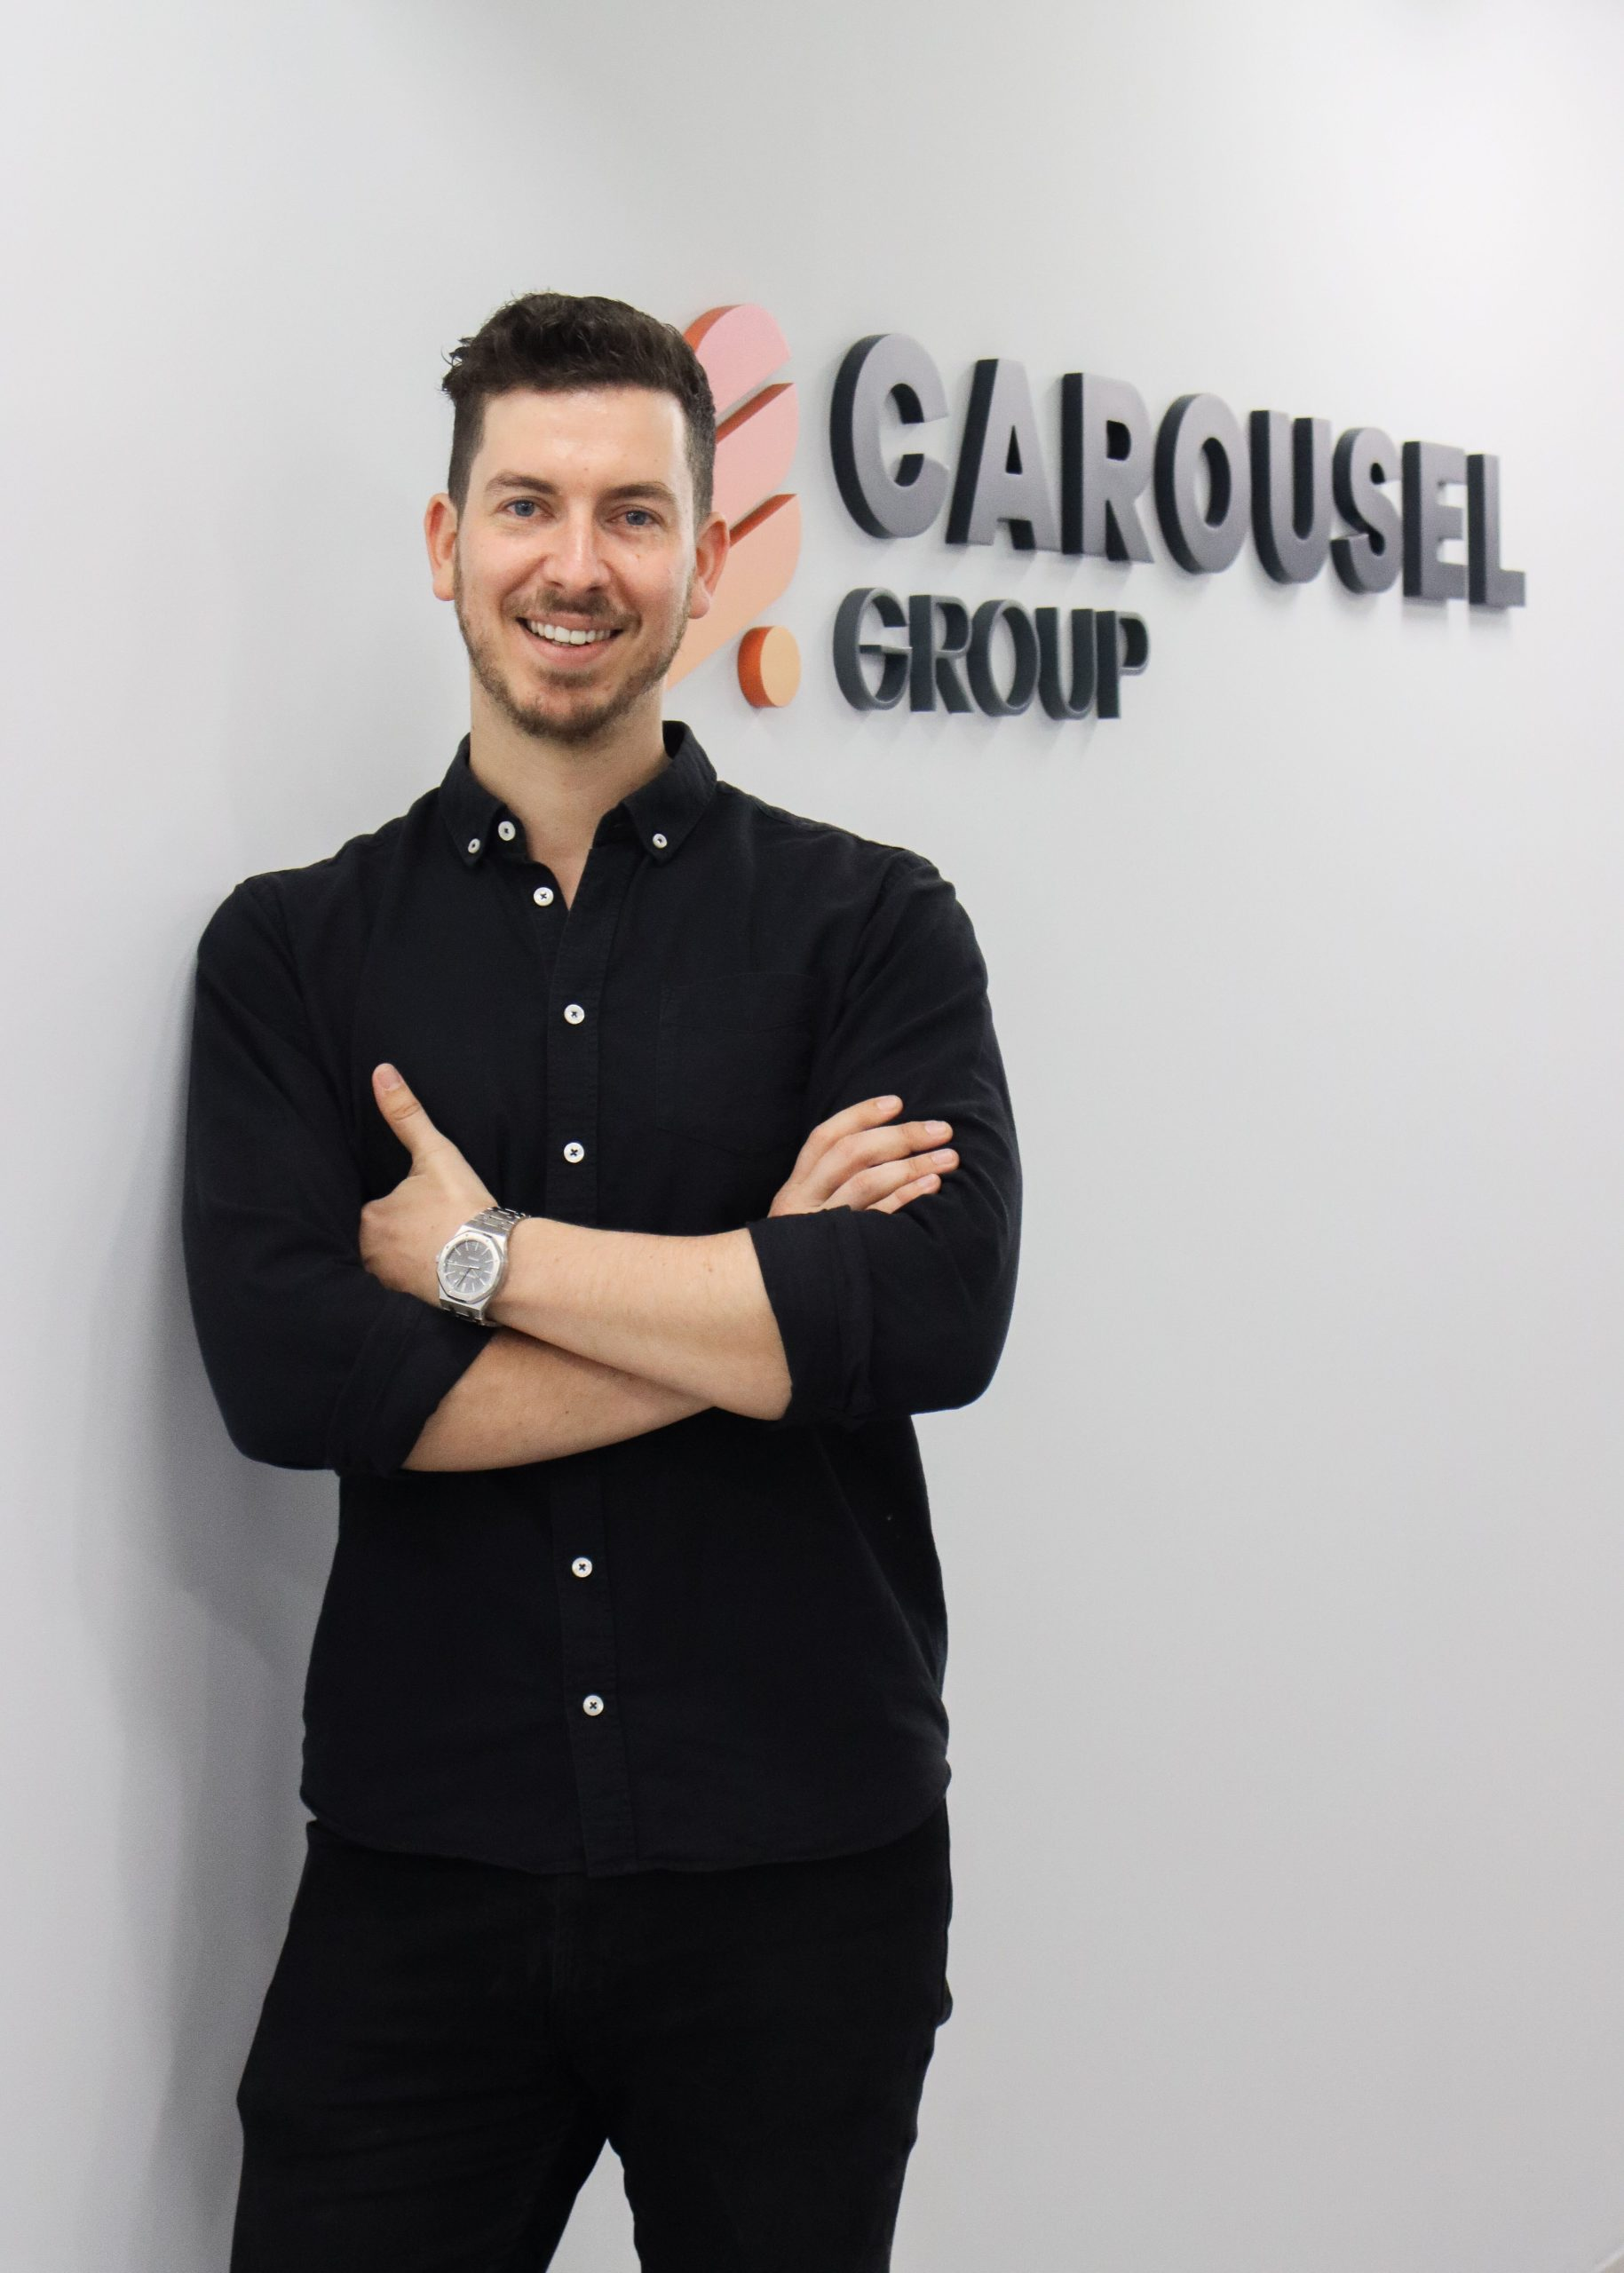 Carousel Group Receives Malta Gaming License